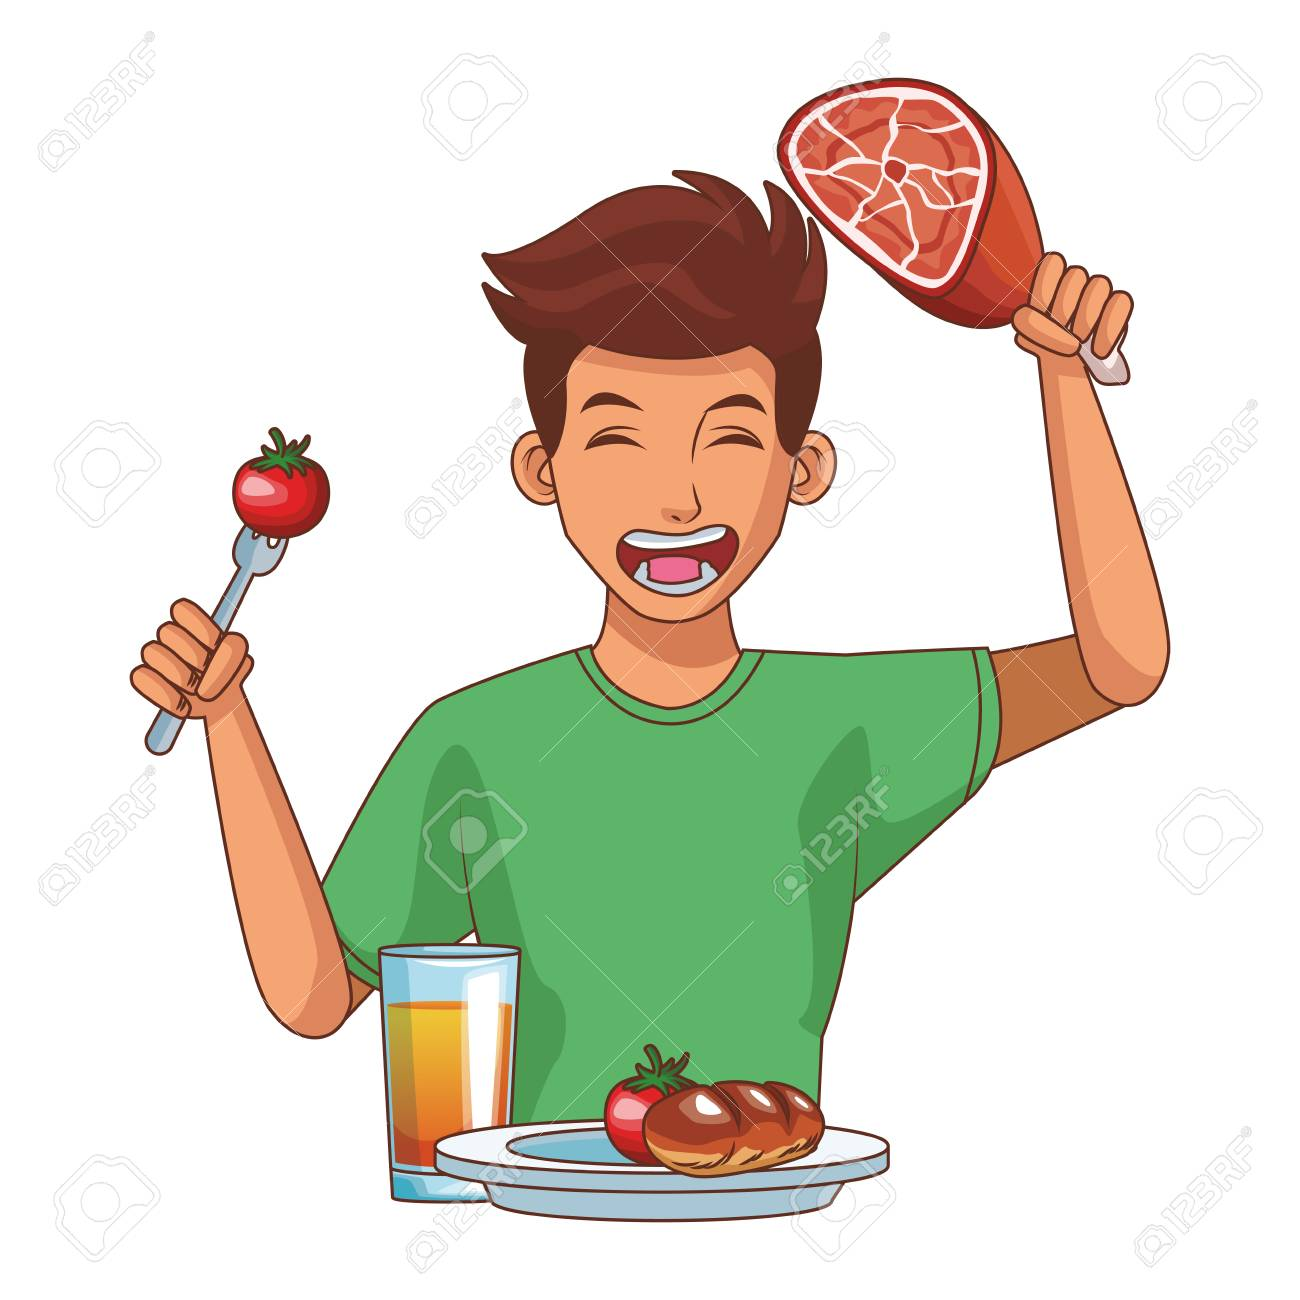 Young Man Eating Healthy Food Cartoon Vector Illustration Graphic Royalty Free Cliparts Vectors And Stock Illustration Image 109639937